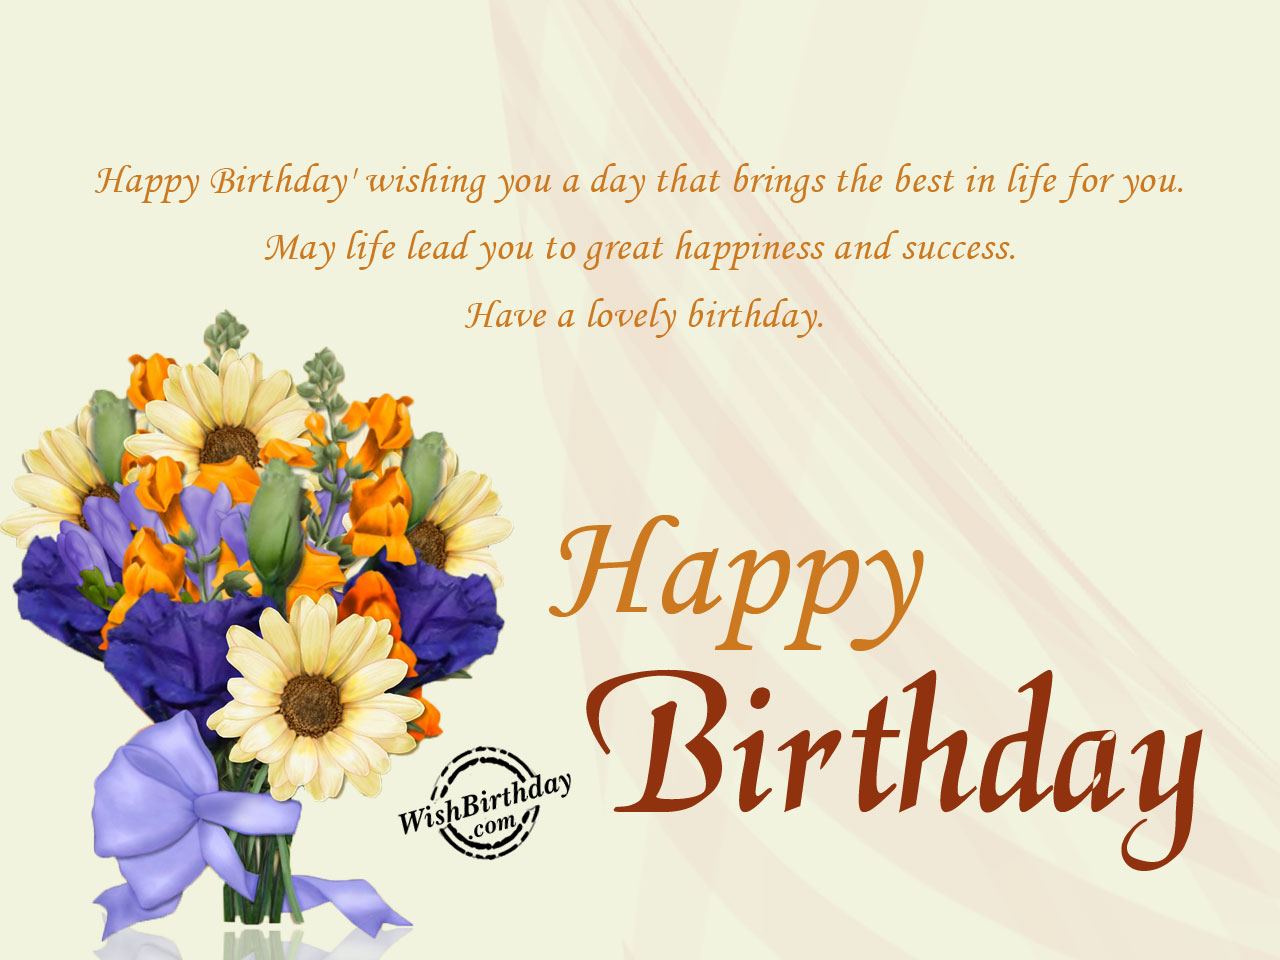 wishing you a day brings the best in life for you WishBirthday – Best Wishes in Life